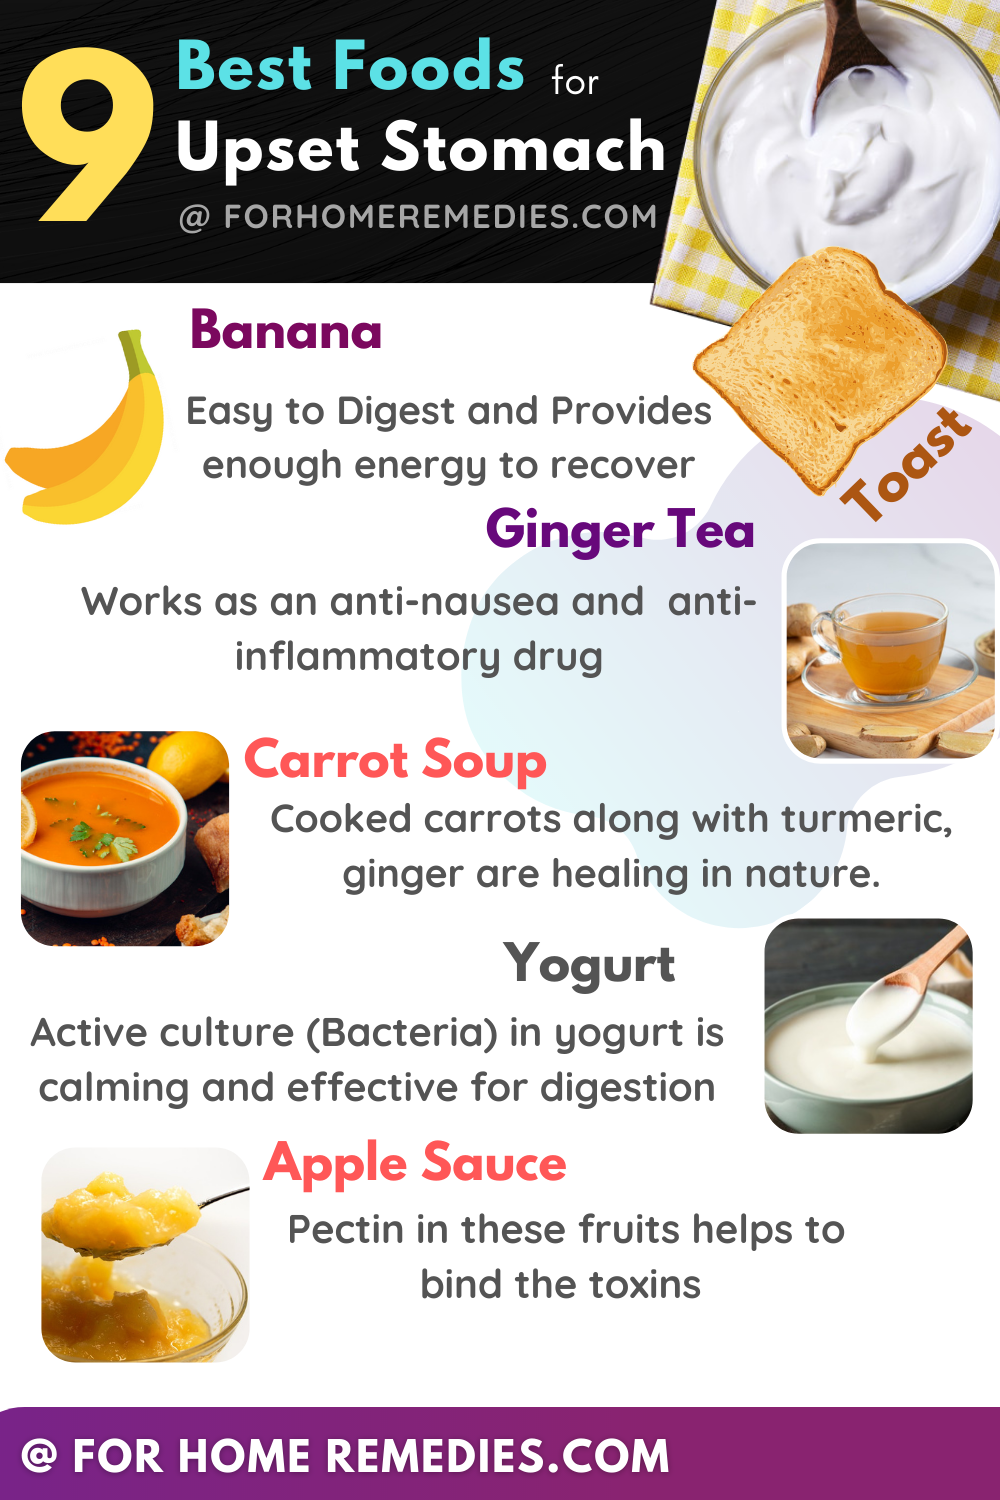 Best foods for Upset Stomach